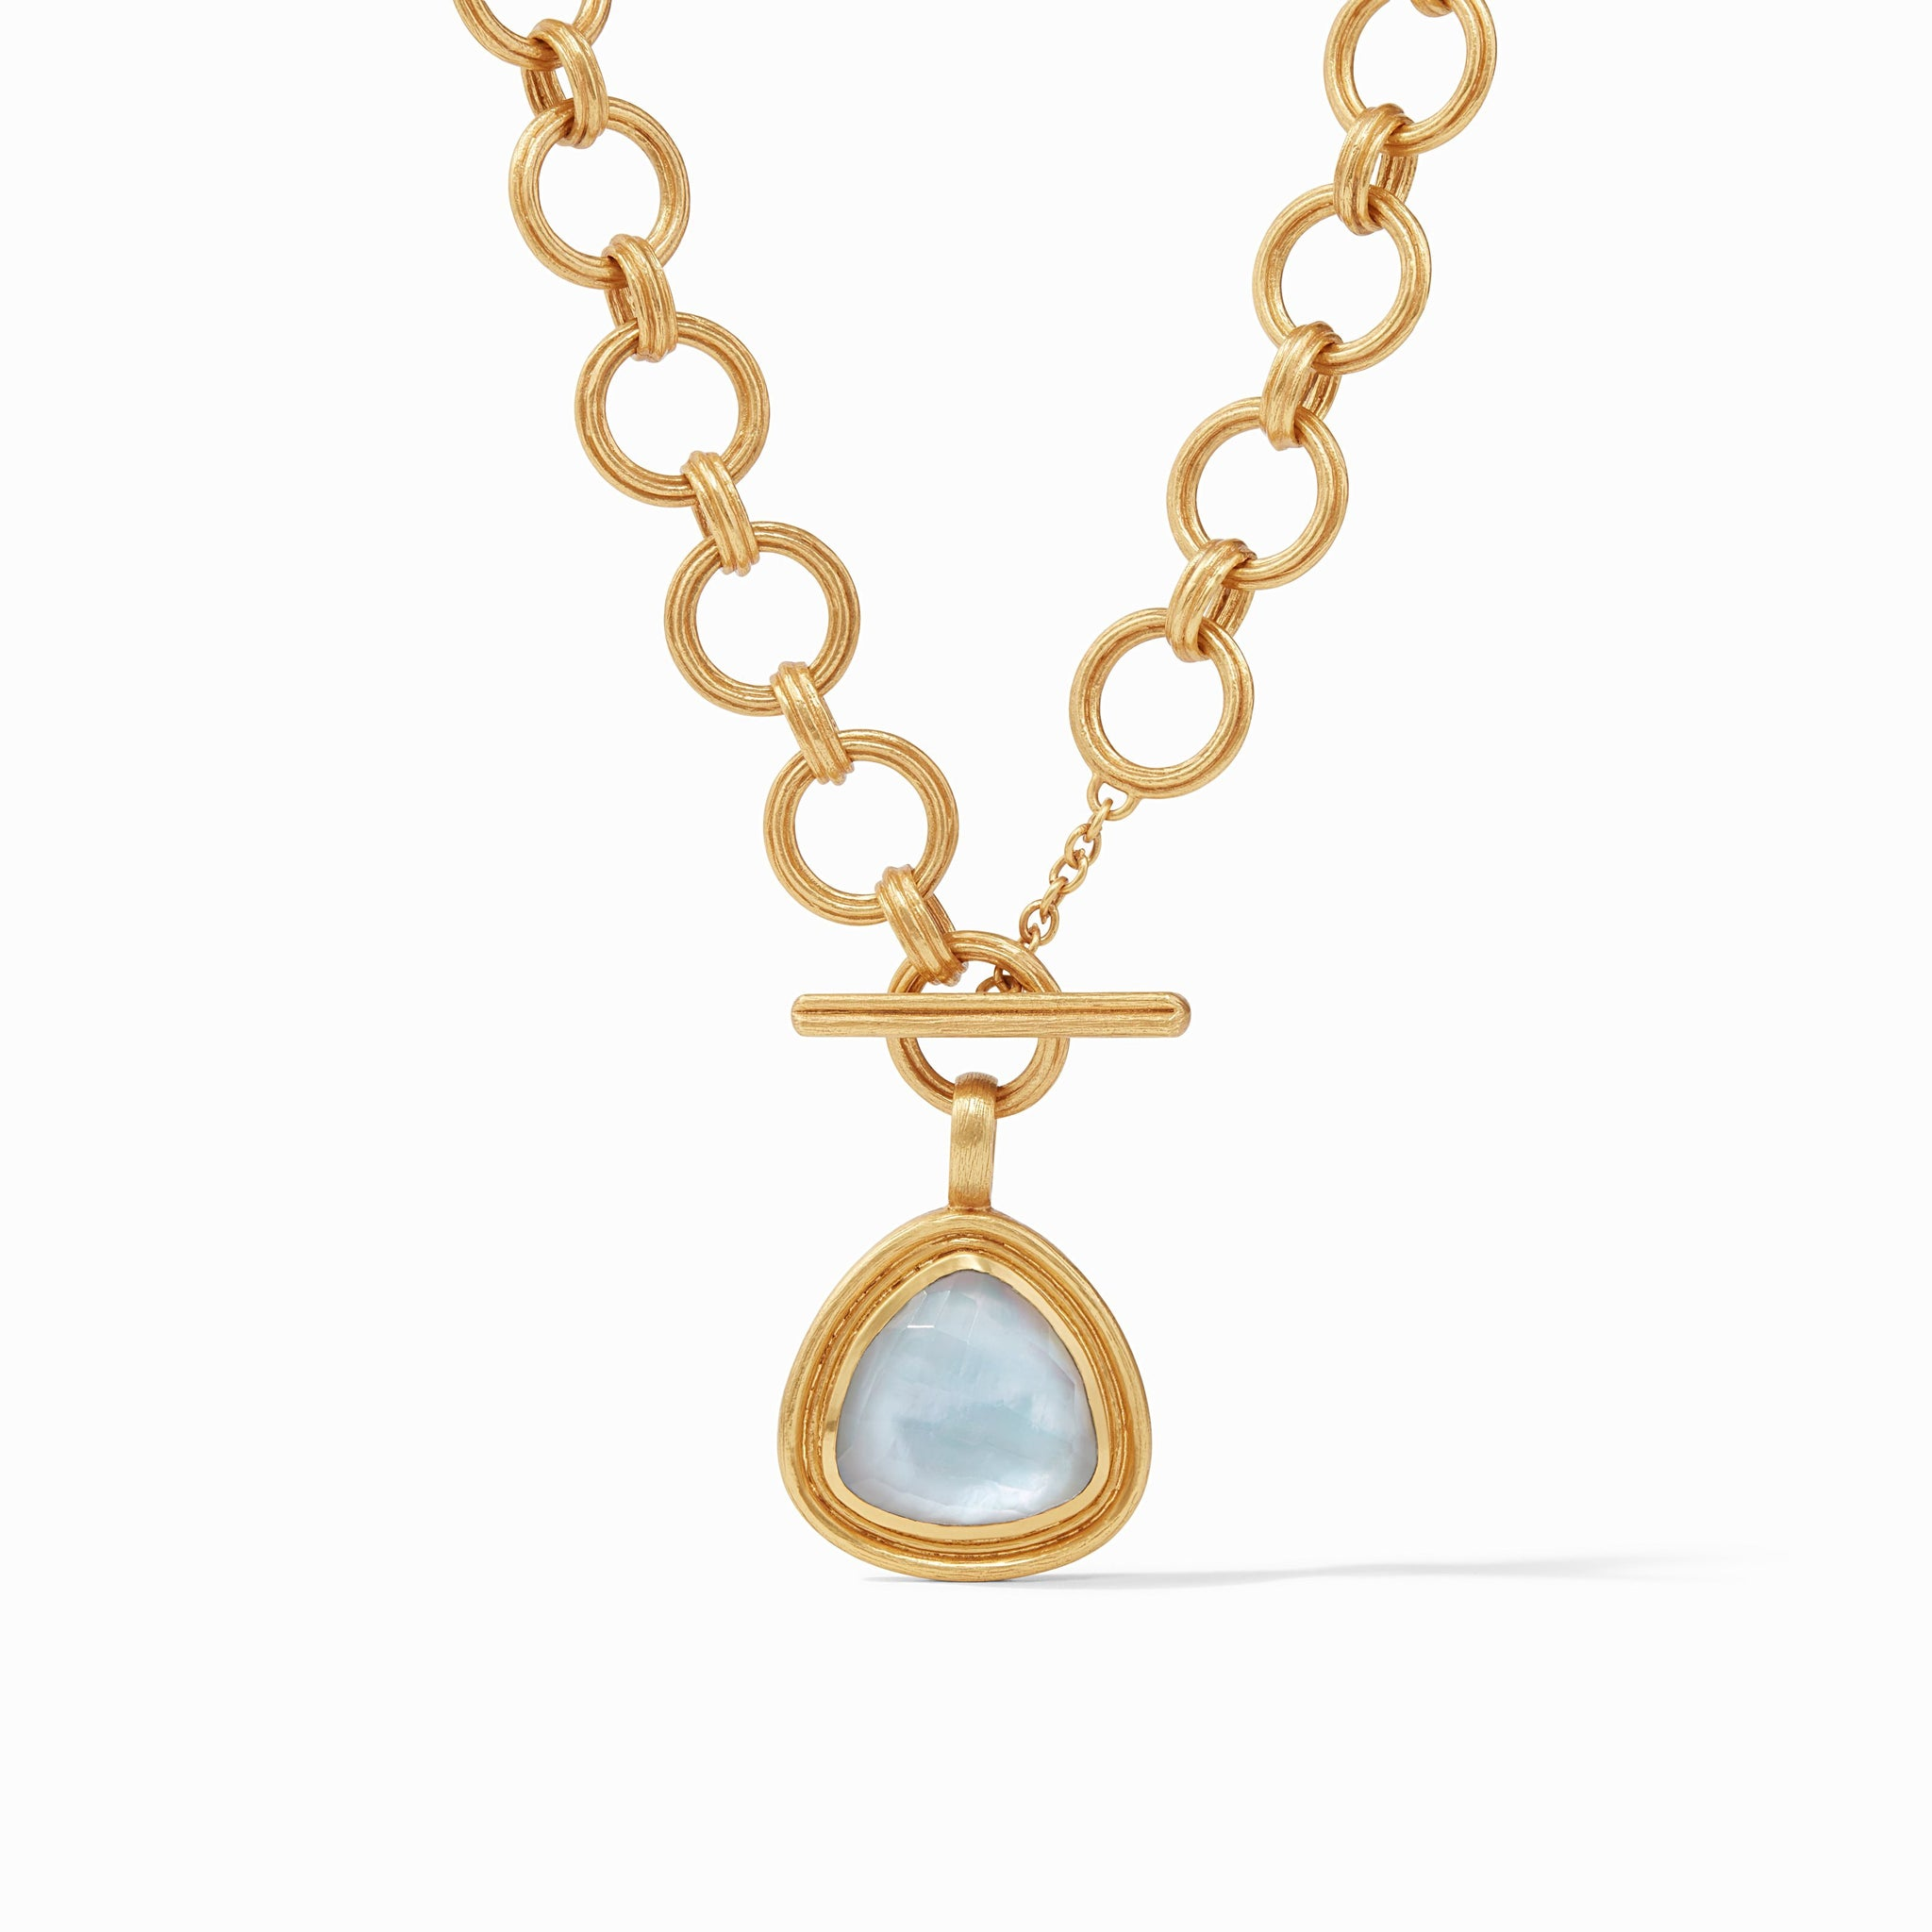 Iridescent Chalcedony Blue, irresistibly iridescent, summertime 2020